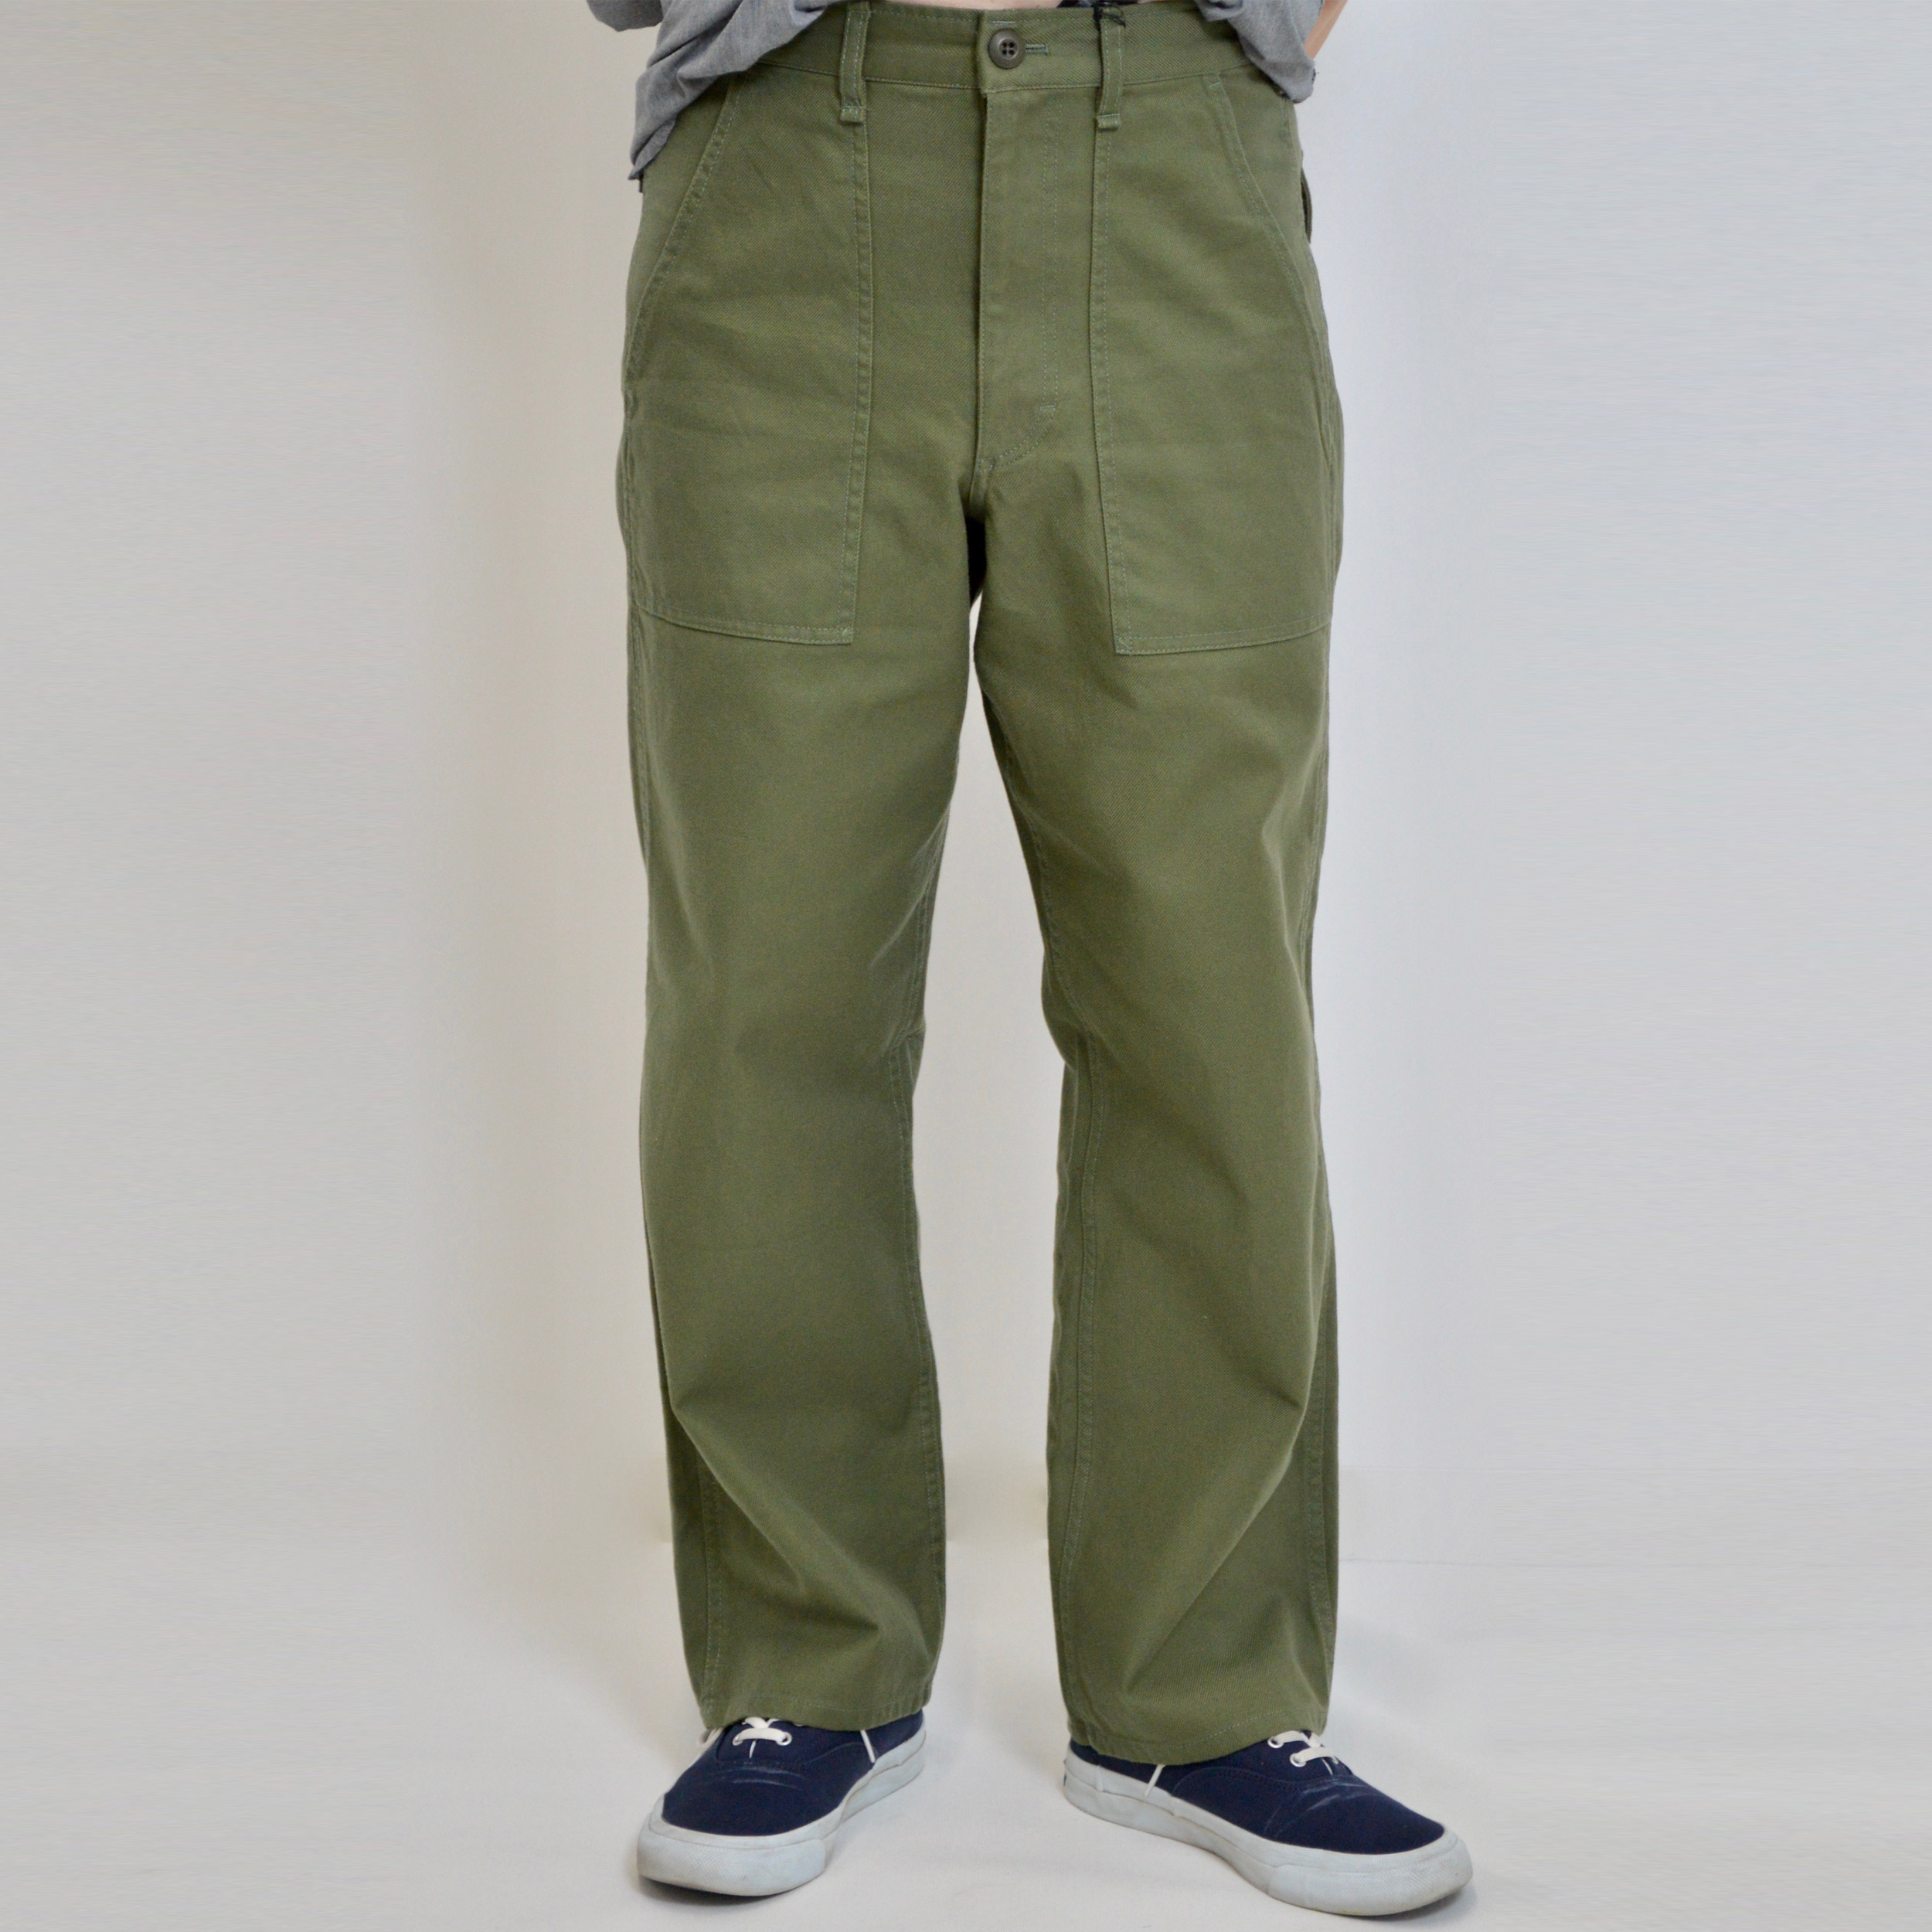 【BEGIN掲載商品】45th Authentic BAYKER PANTS